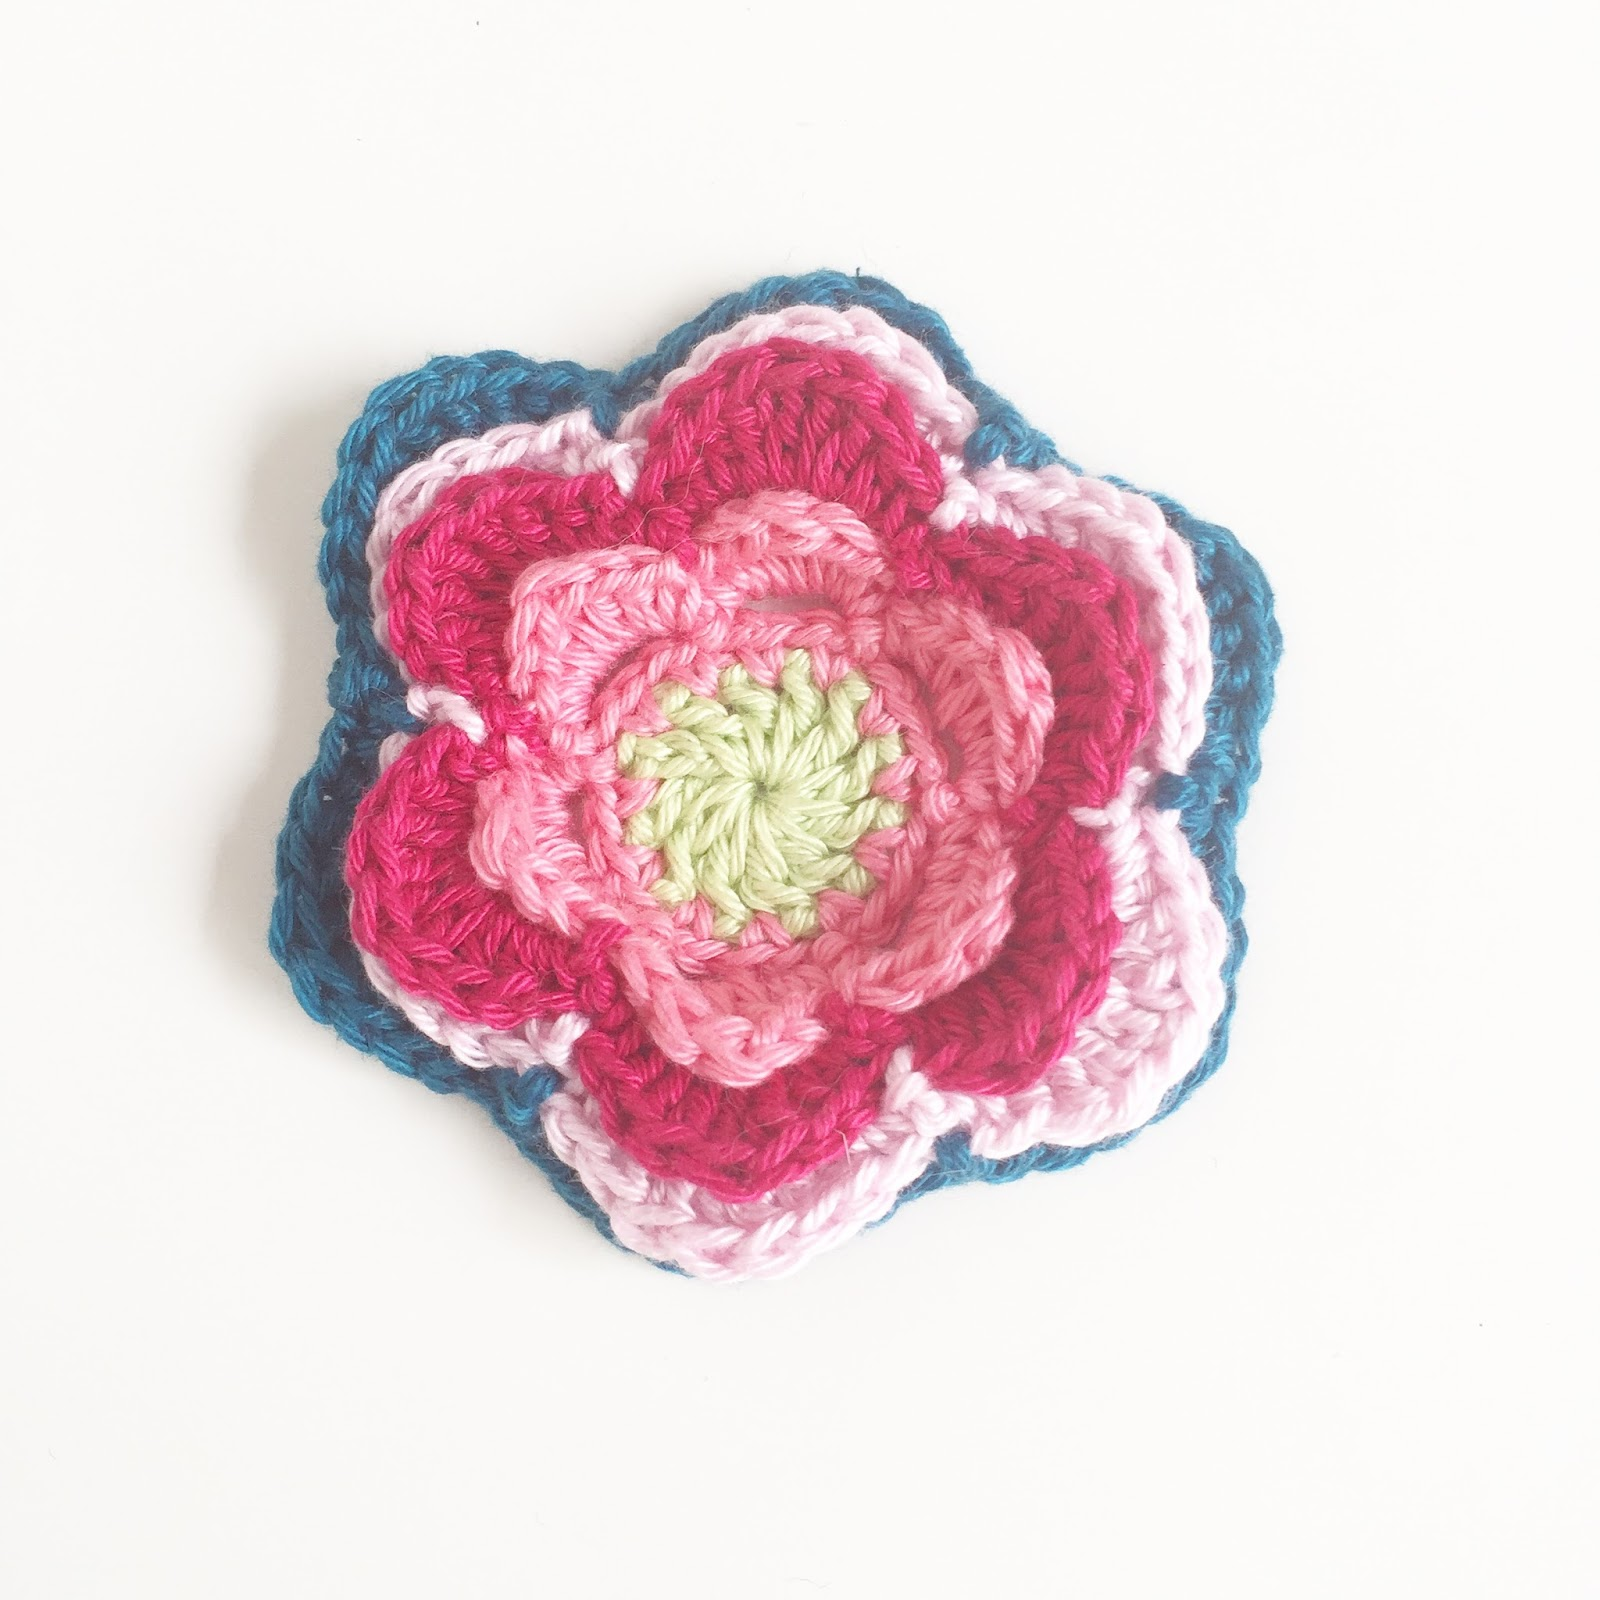 Flower Crochet Ebook